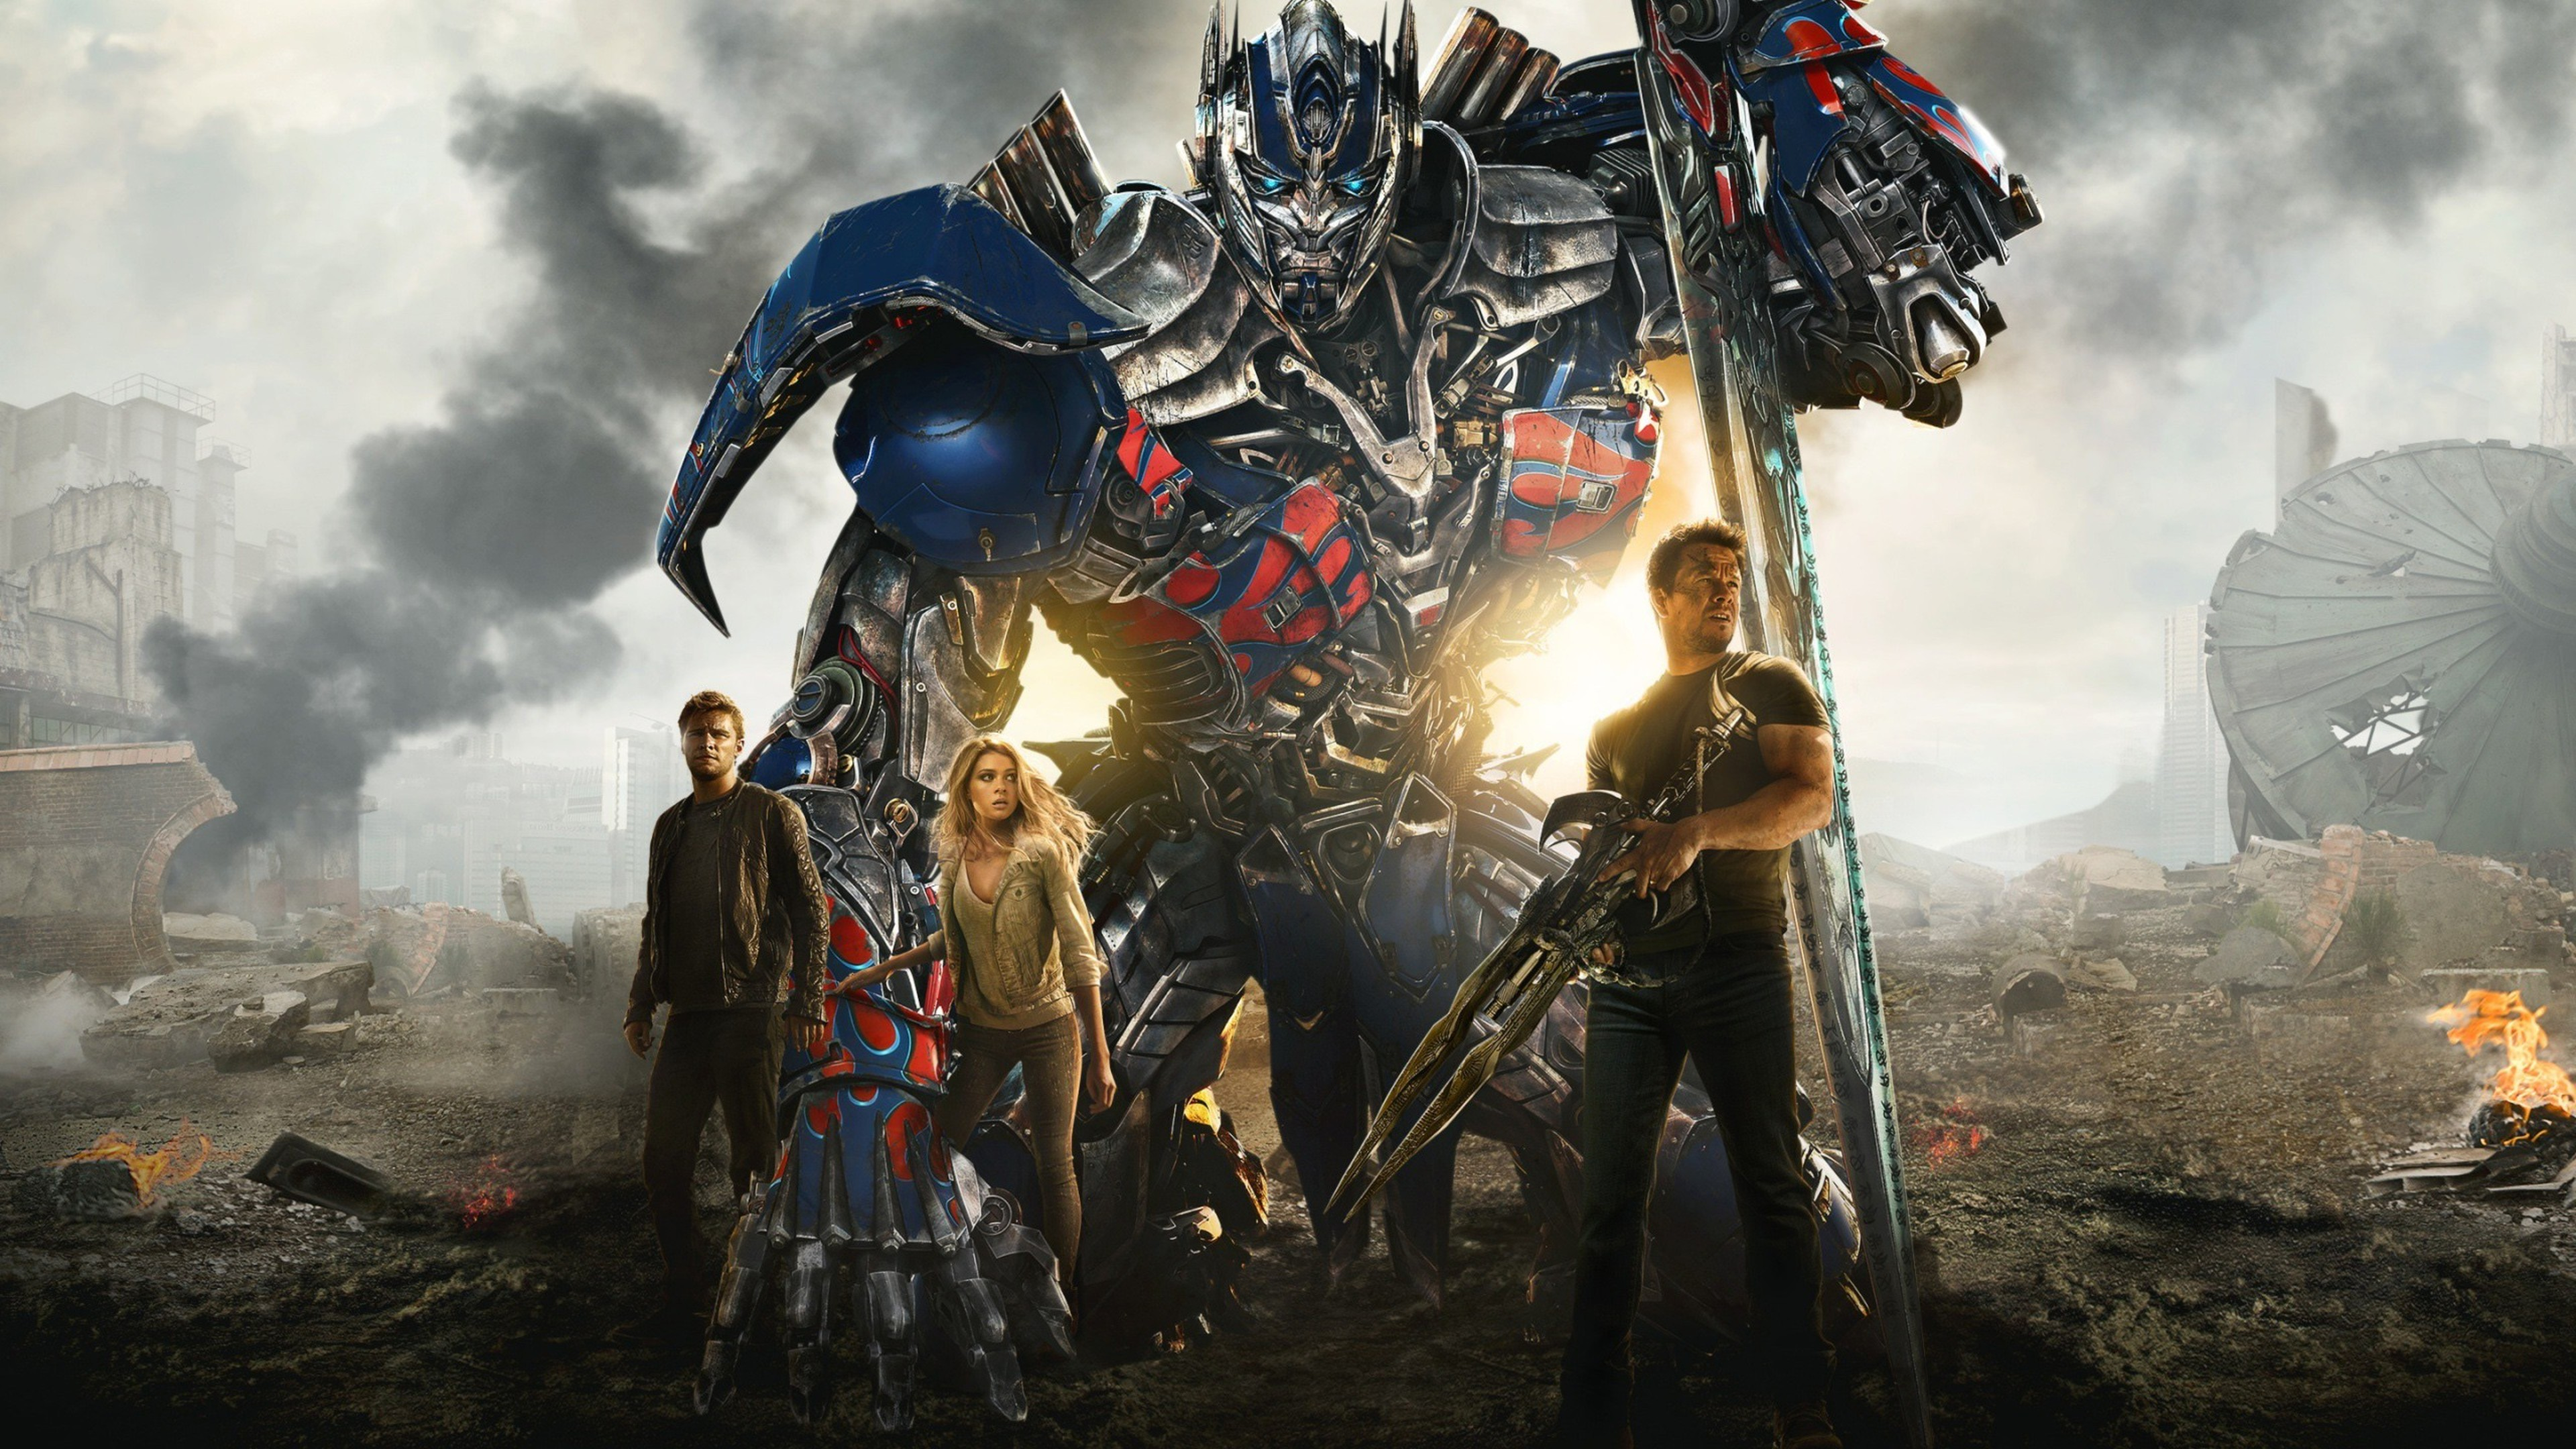 transformers 4 age of extinction movie, hd movies, 4k wallpapers